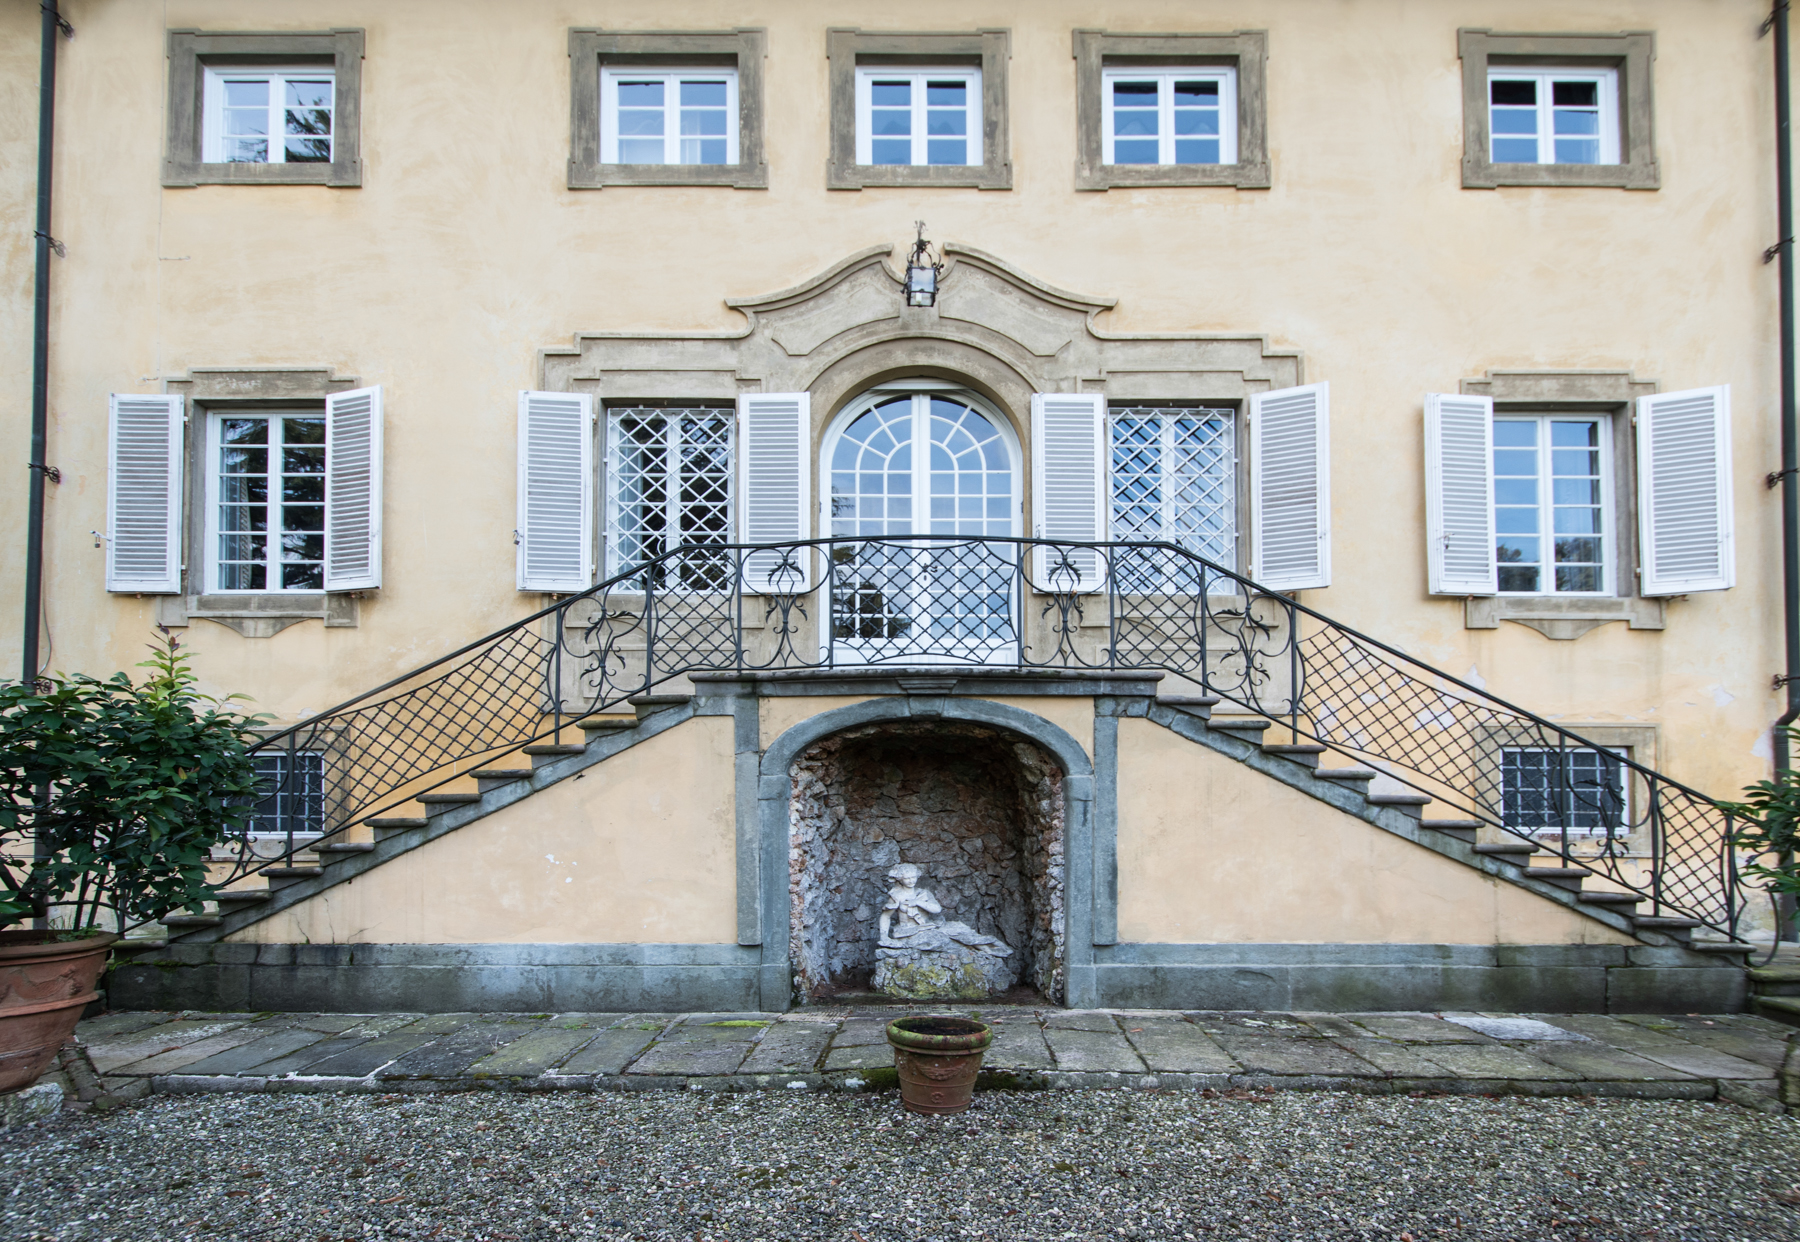 Single Family Home for Sale at Charming 18th century villa in Lucca countryside Montuolo Lucca, Lucca 55100 Italy